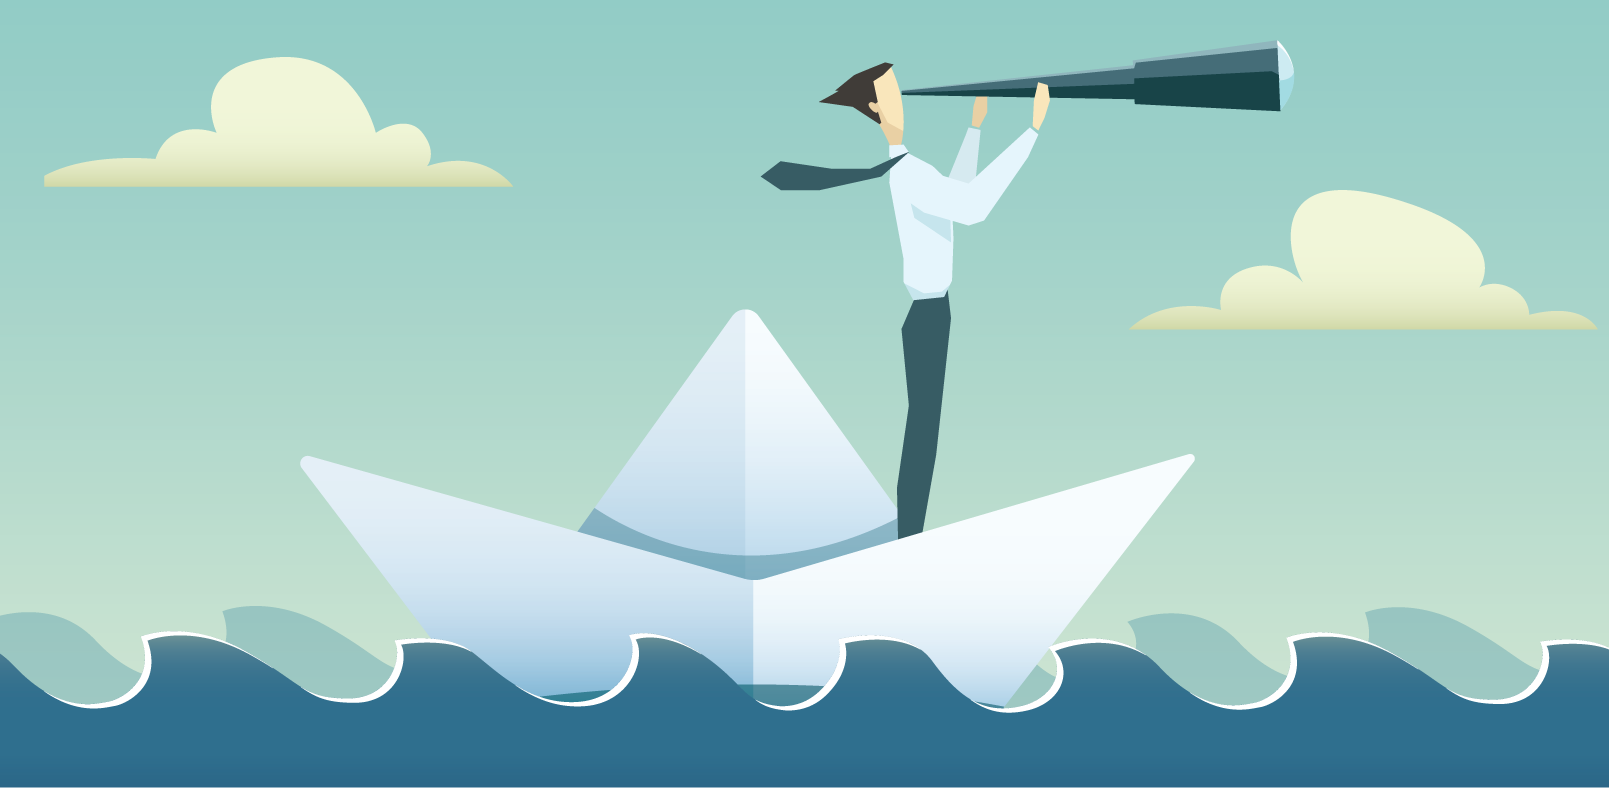 Exhausted in Your Job Search? How to Get the Wind Back in Your Sails